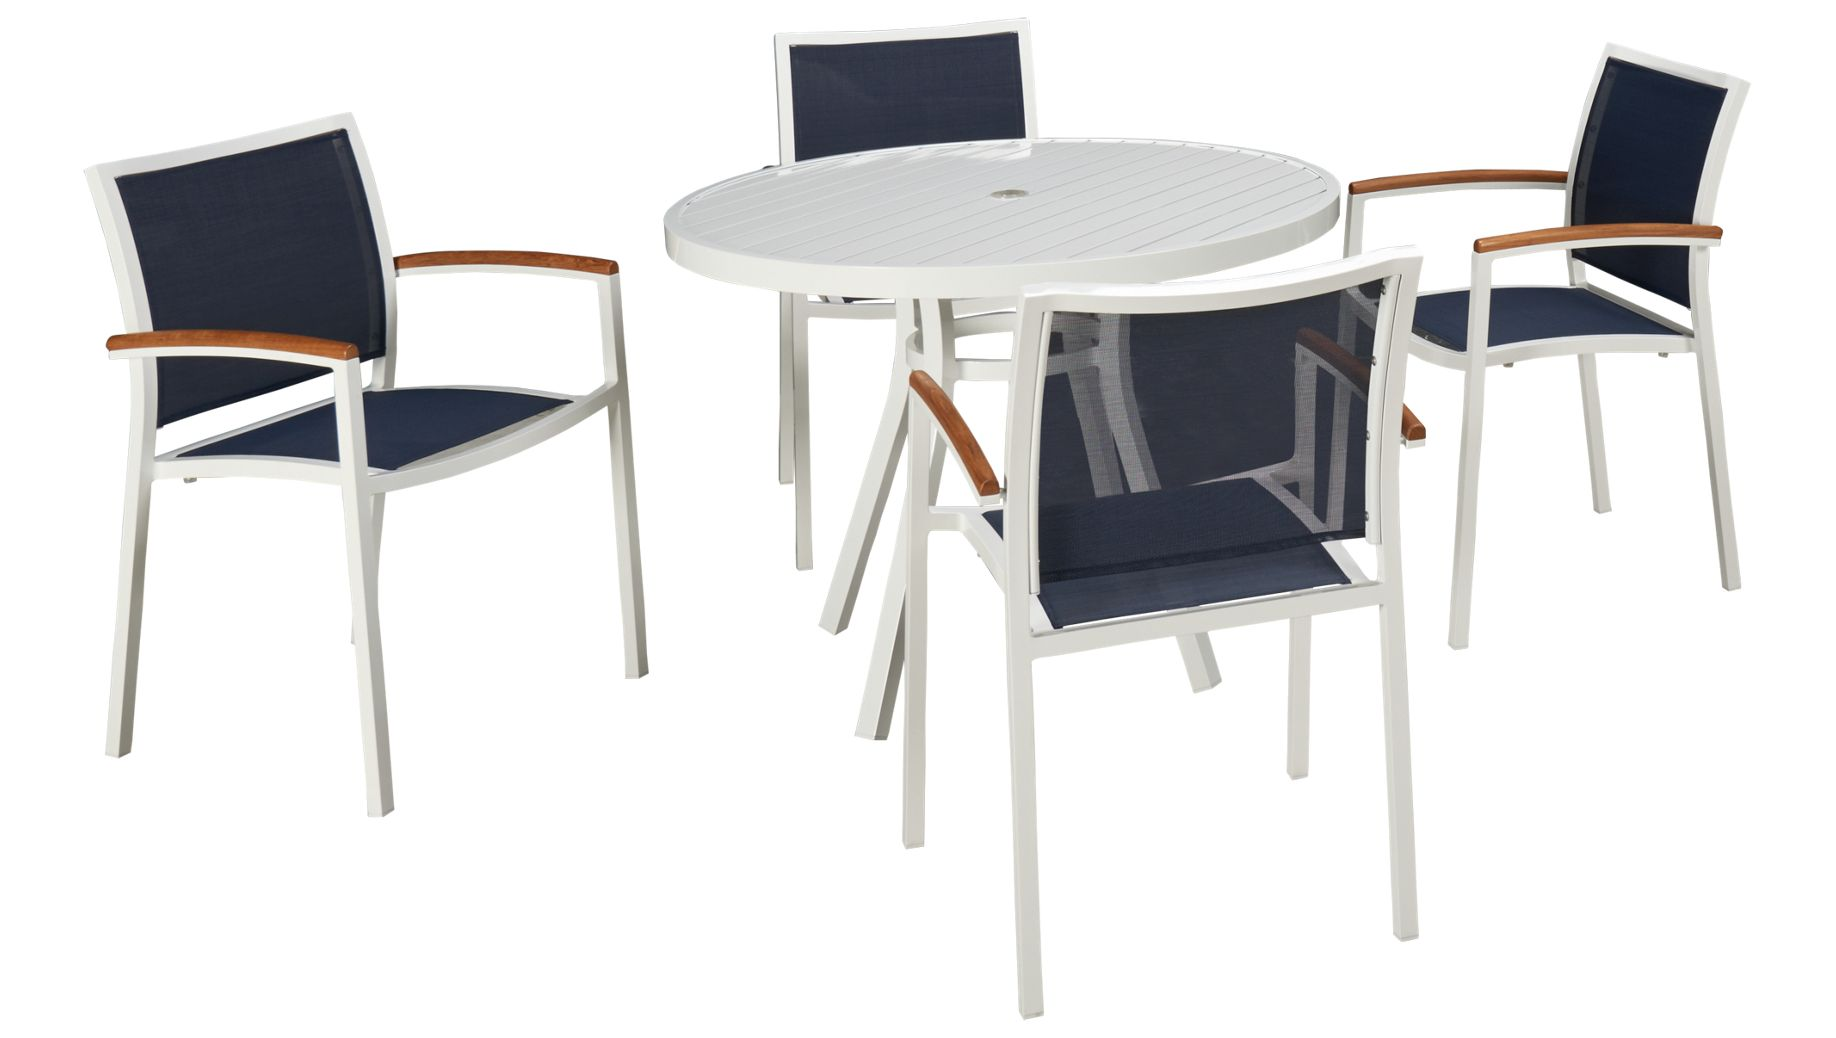 Outdoor dining furniture outdoor dining sets lloyd flanders dining - Lloyd Flanders Lux 5 Piece Outdoor Dining Set